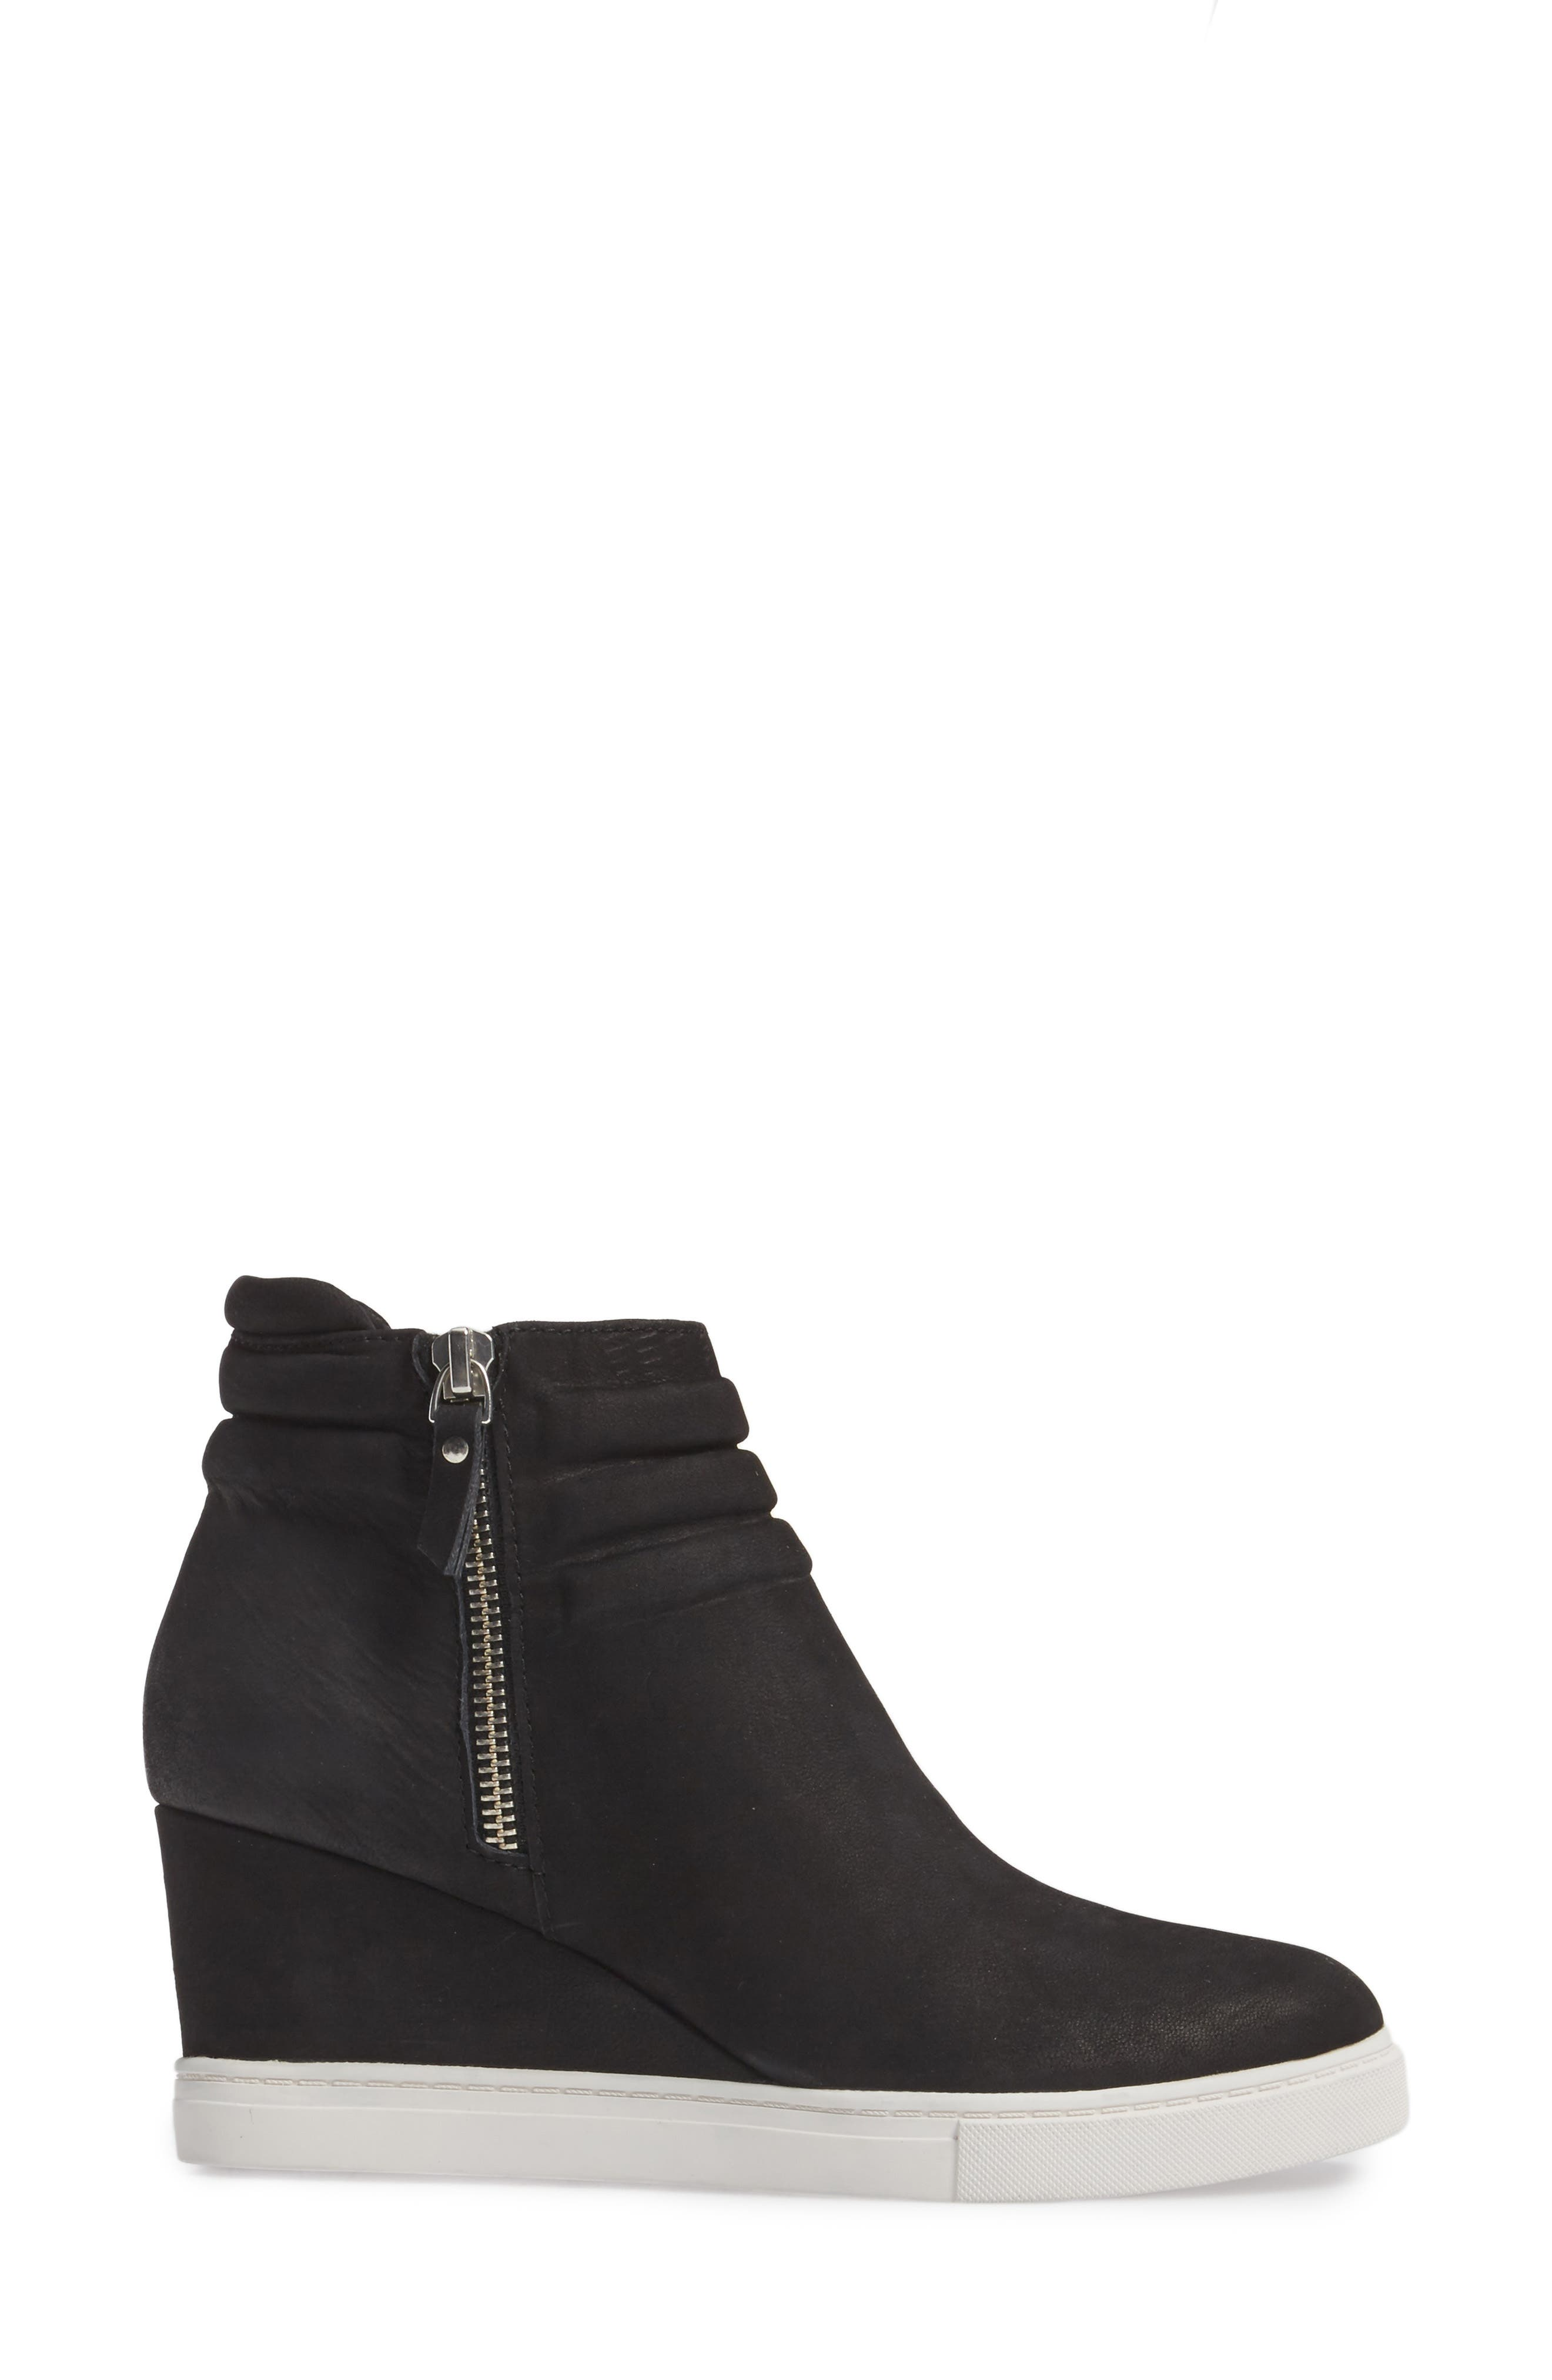 Frieda Wedge Bootie,                             Alternate thumbnail 3, color,                             BLACK LEATHER